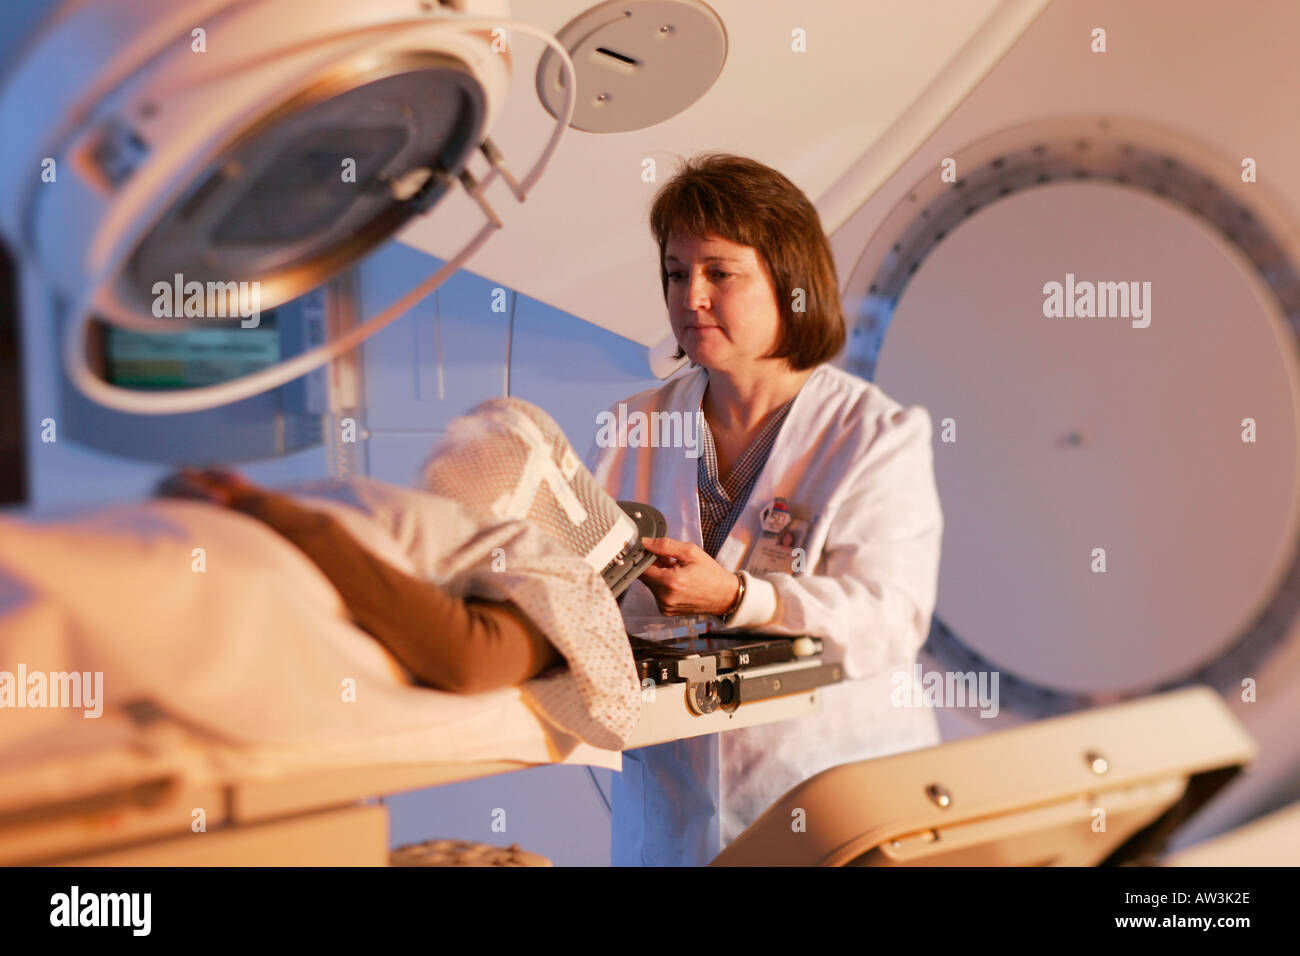 Patient being readied for Linear Accelerator radiation therapy - Stock Image